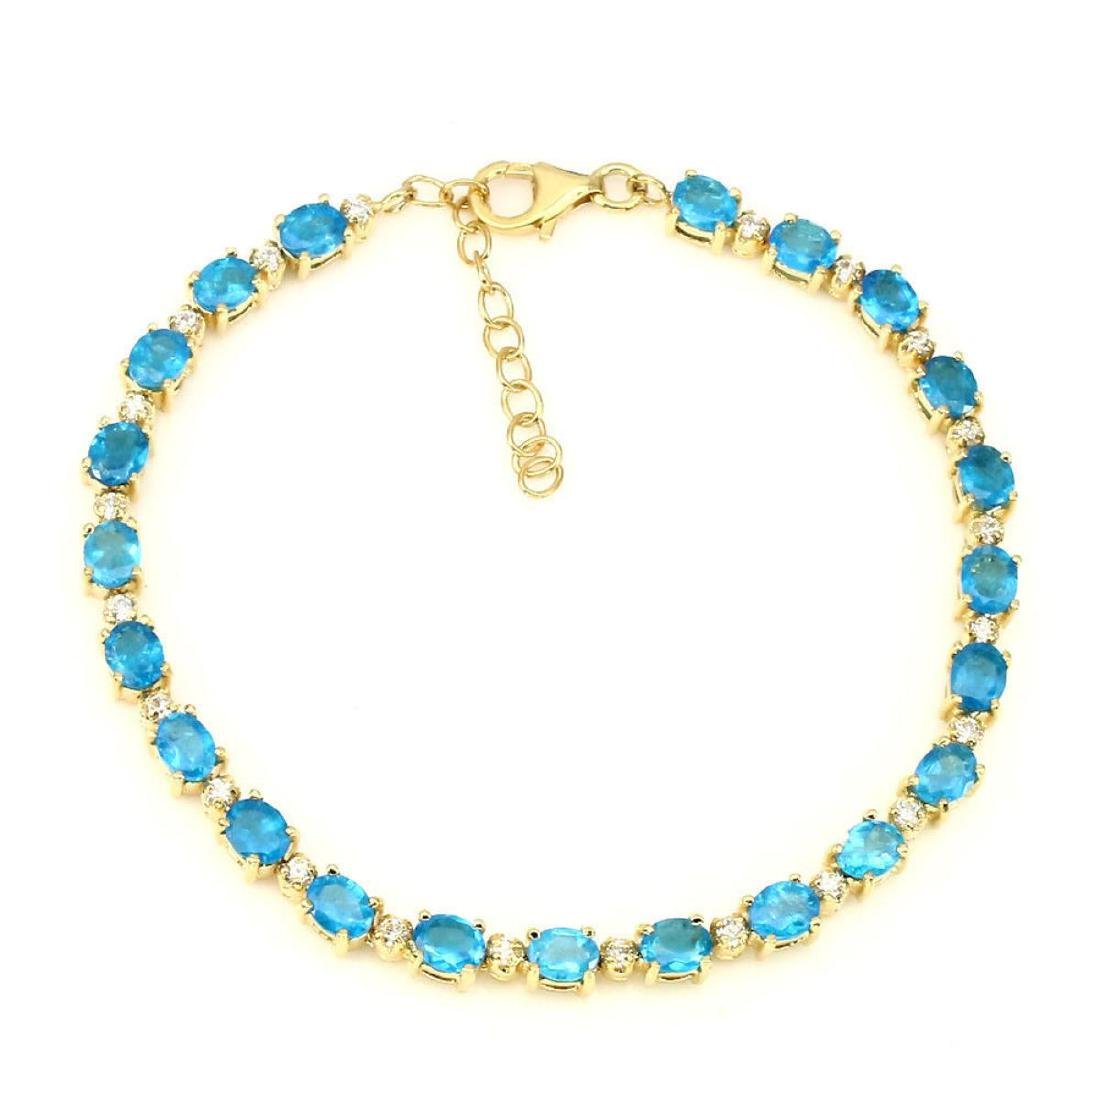 Natural Oval 5x4mm Aaa Neon Blue Apatite Bracelet - 2